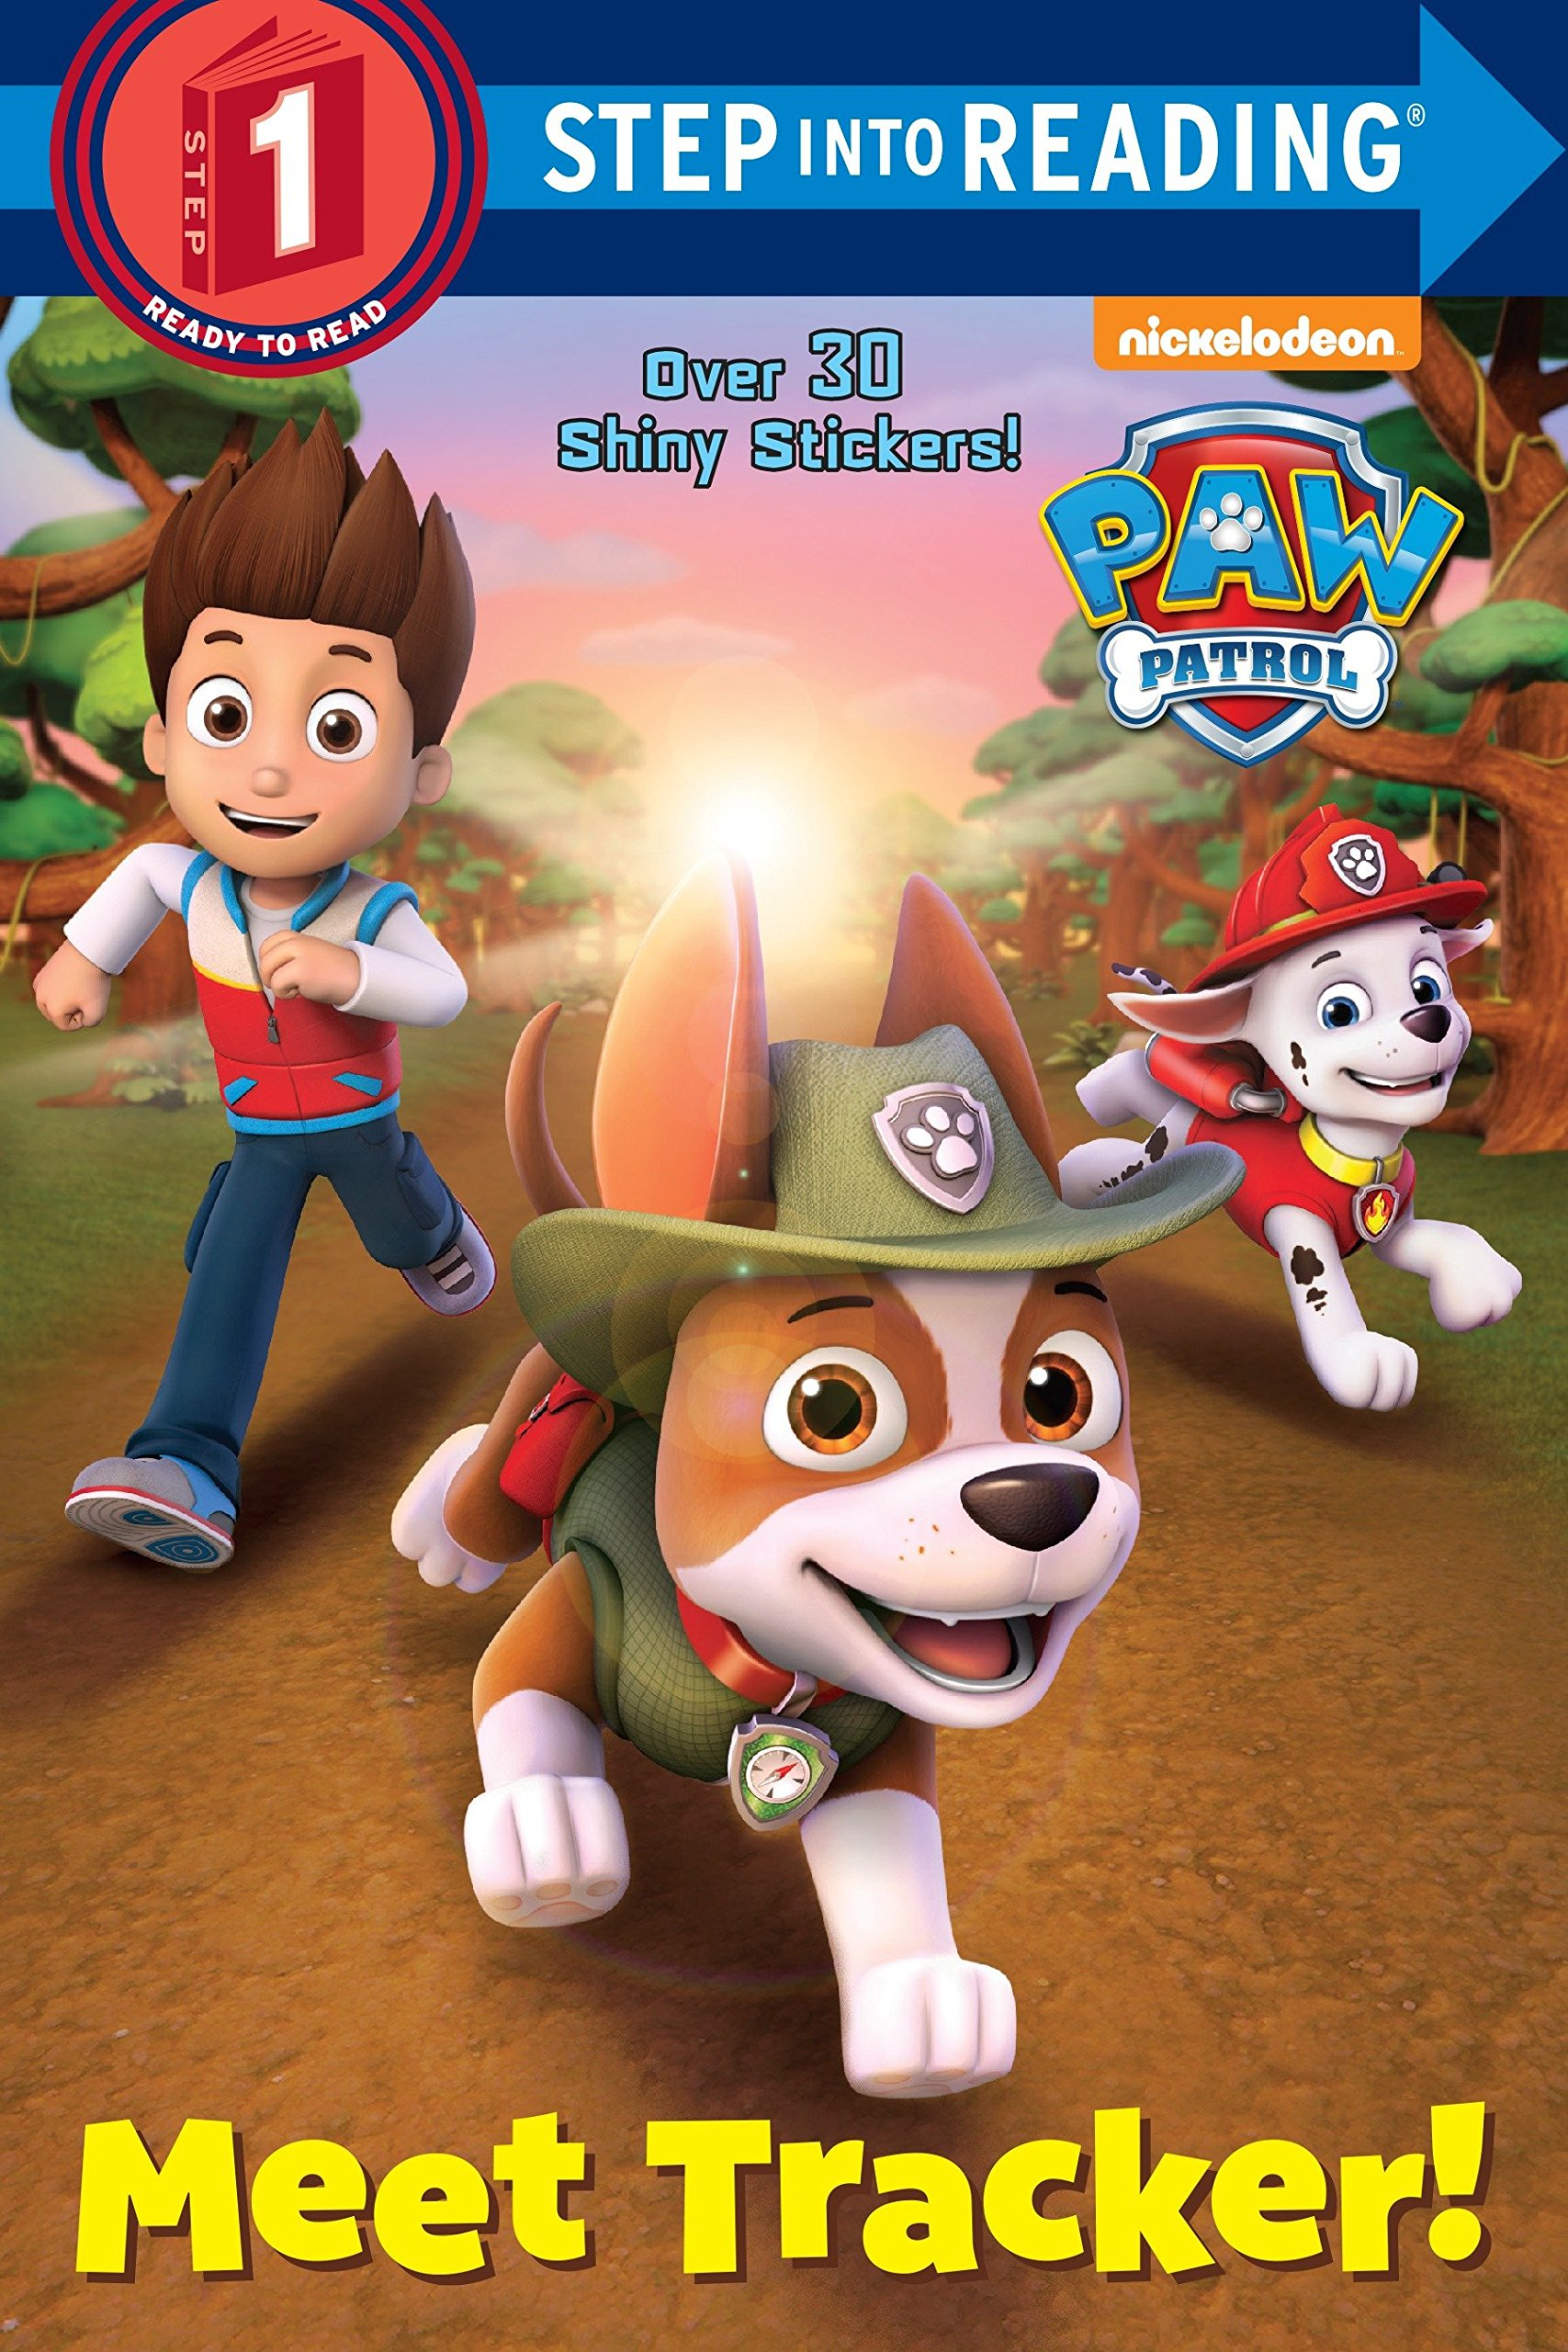 Amazon.com: PAW Patrol Deluxe Step into Reading (PAW Patrol) (9780553522884): Smith, Geof, Fruchter, Jason: Books